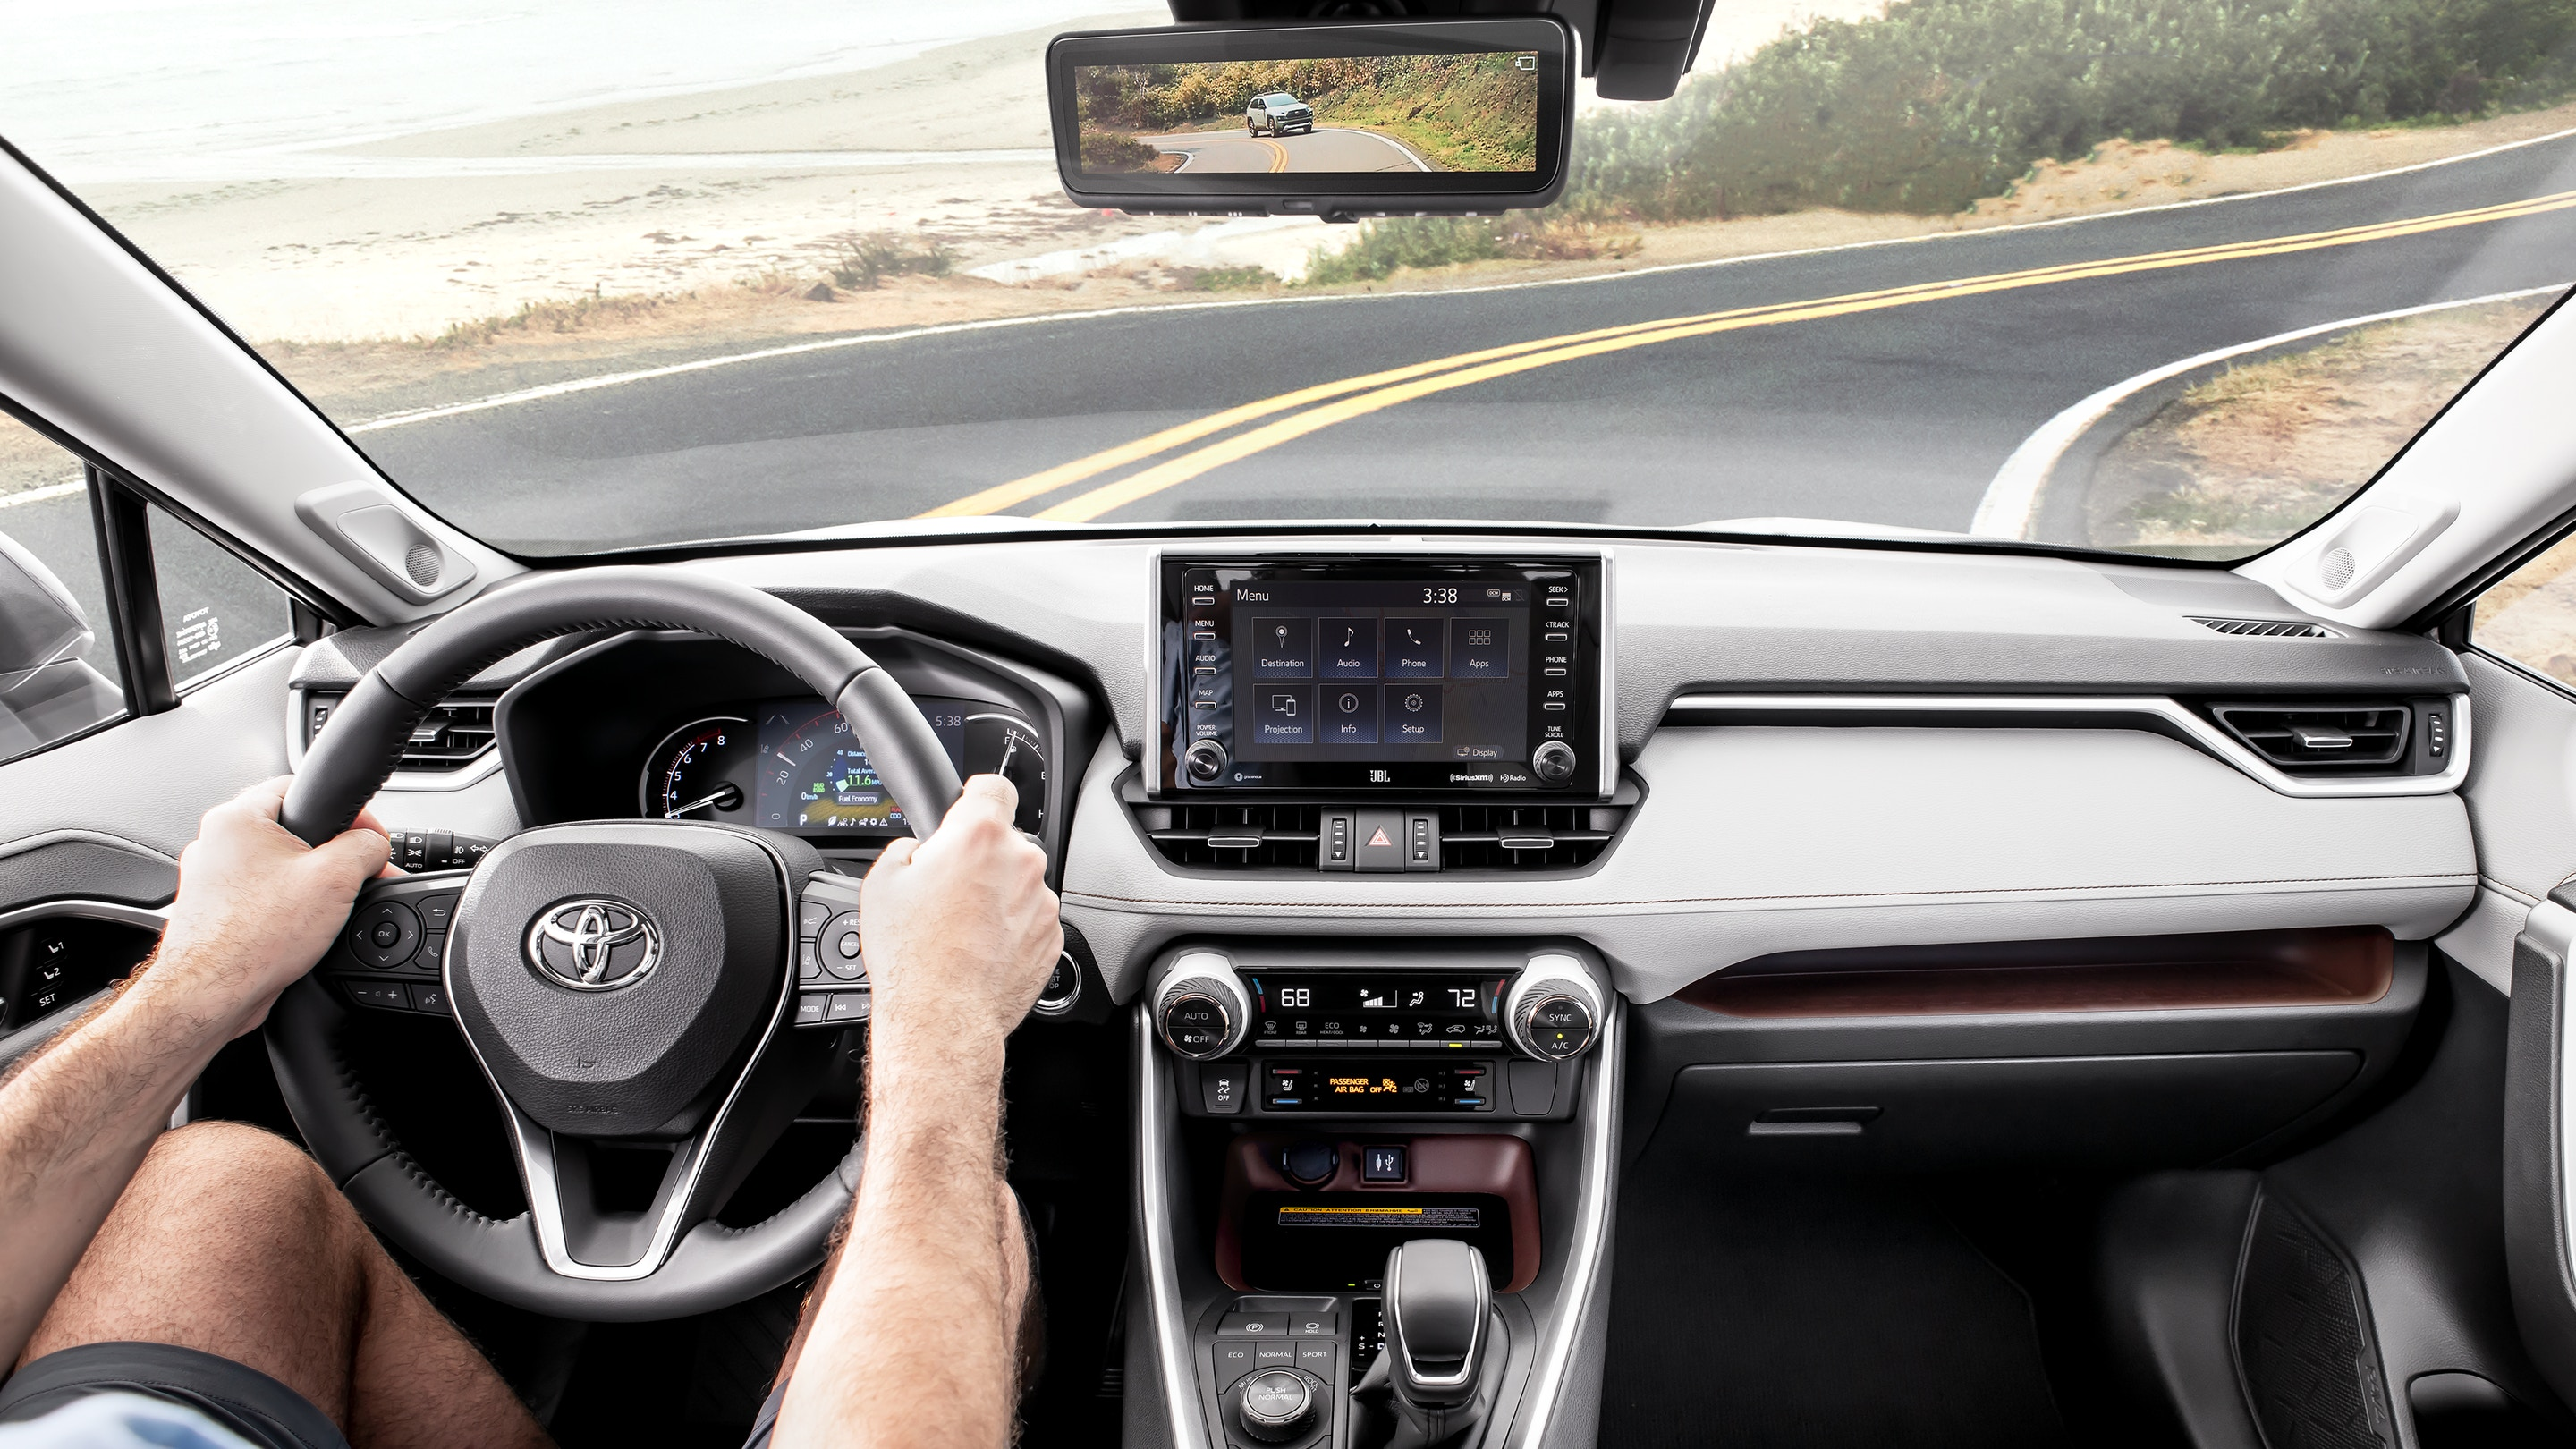 Interior of the 2019 Toyota RAV4